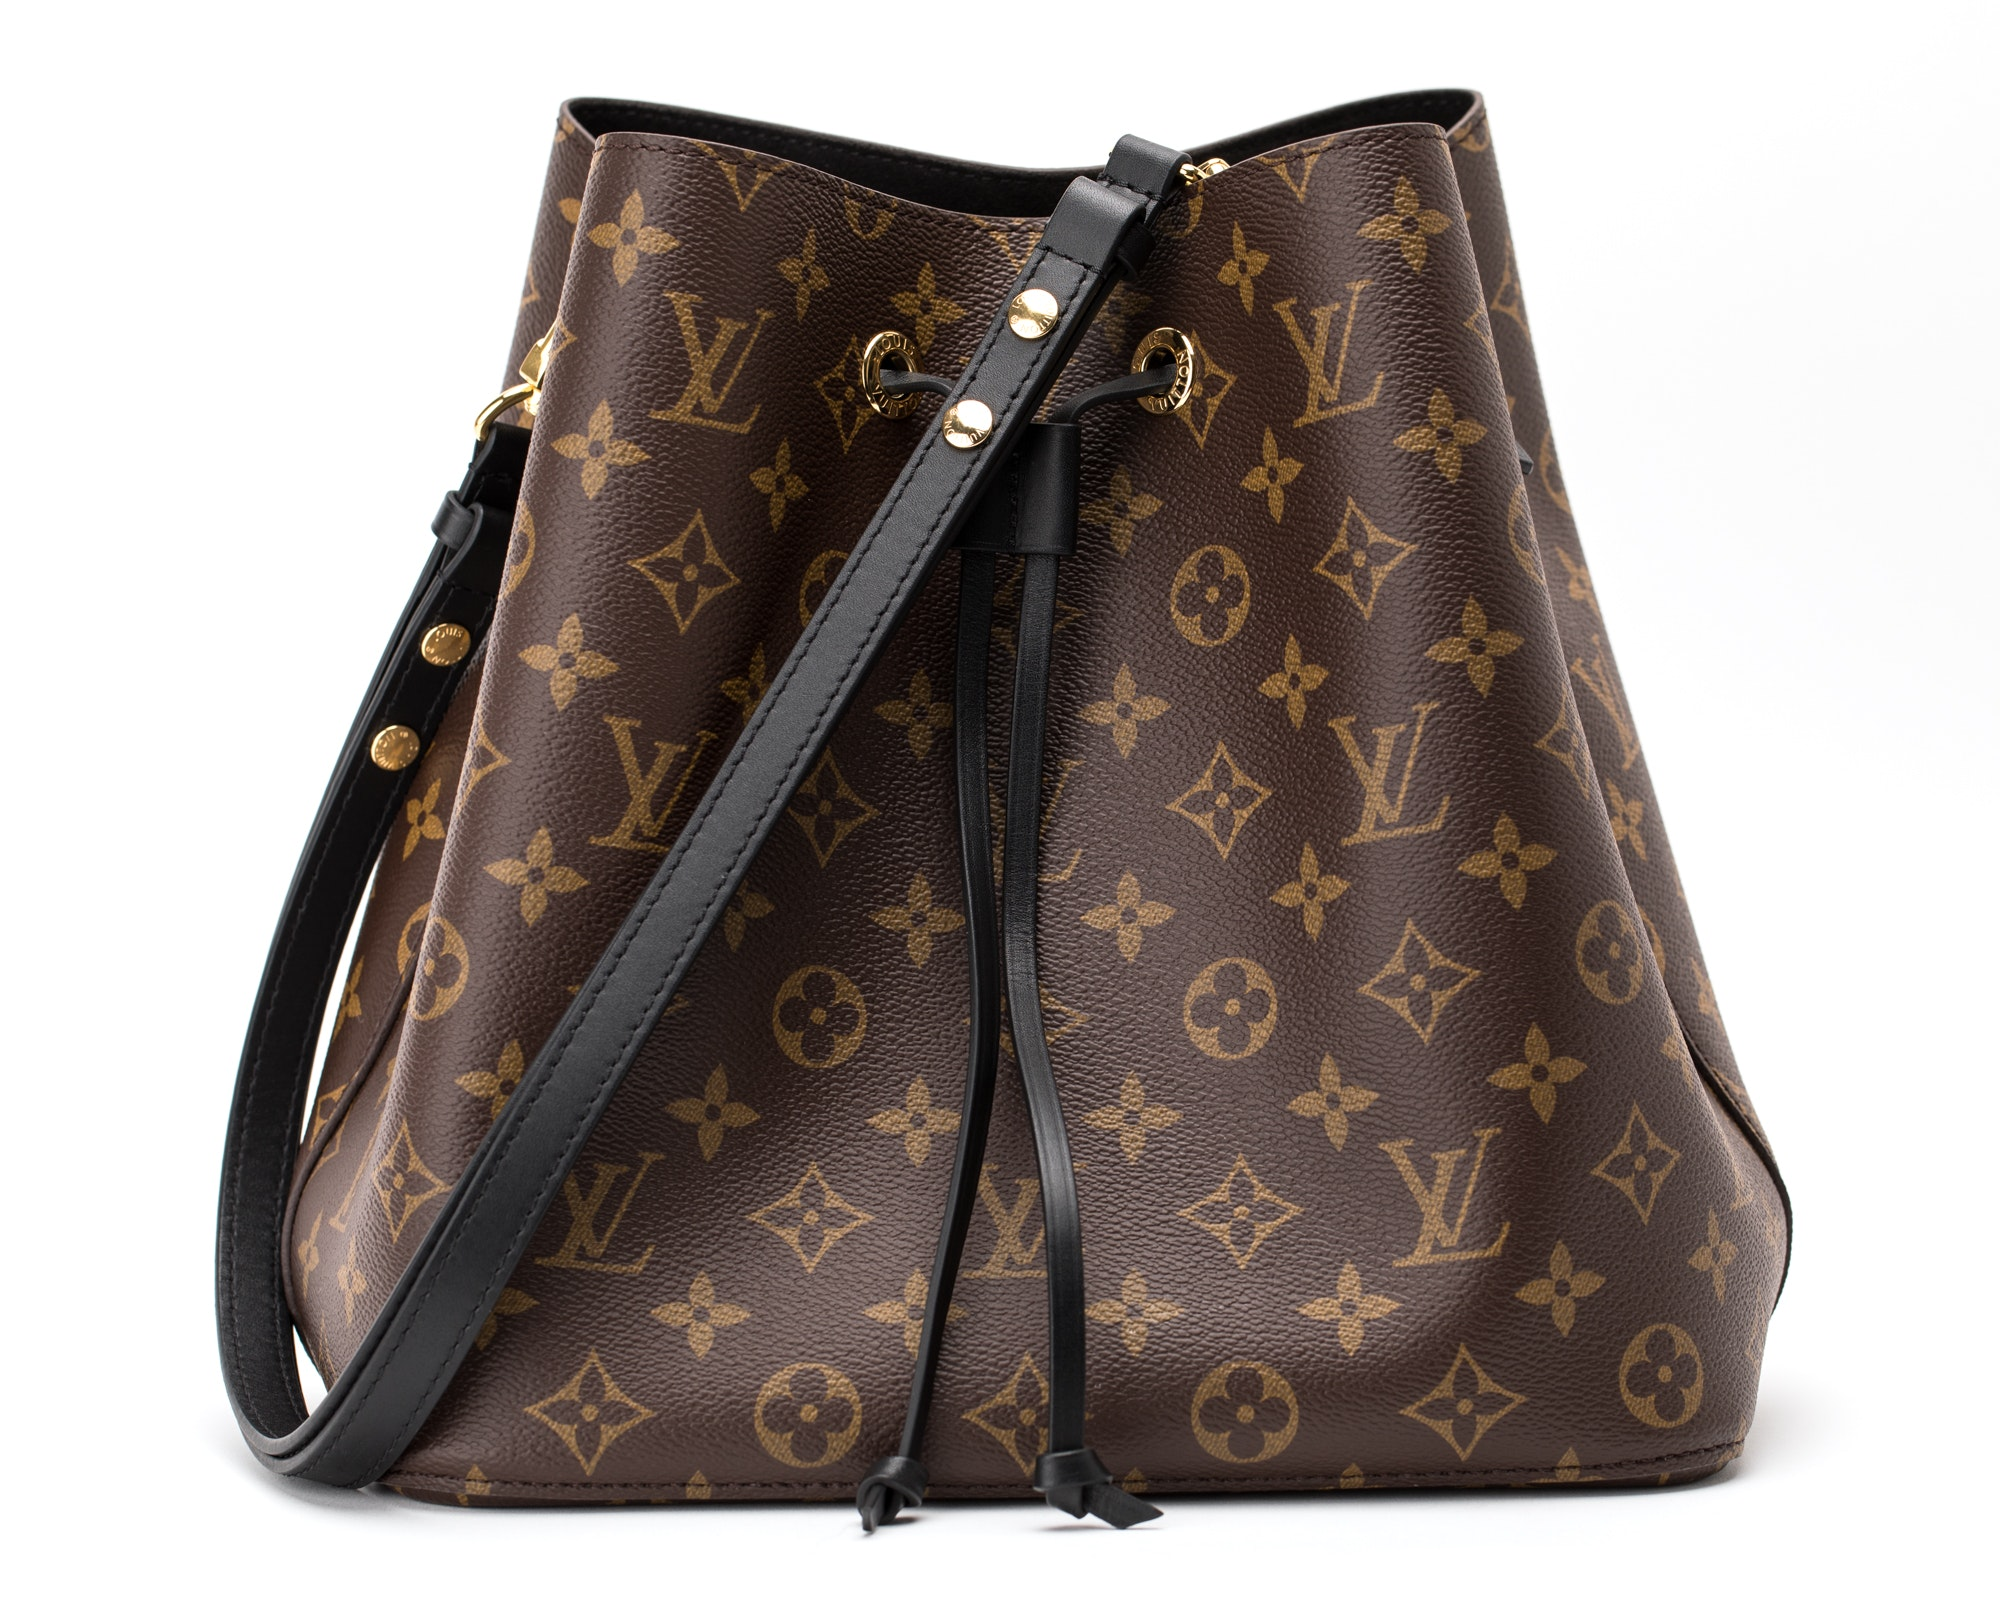 Louis Vuitton Neonoe Monogram Brown/Black